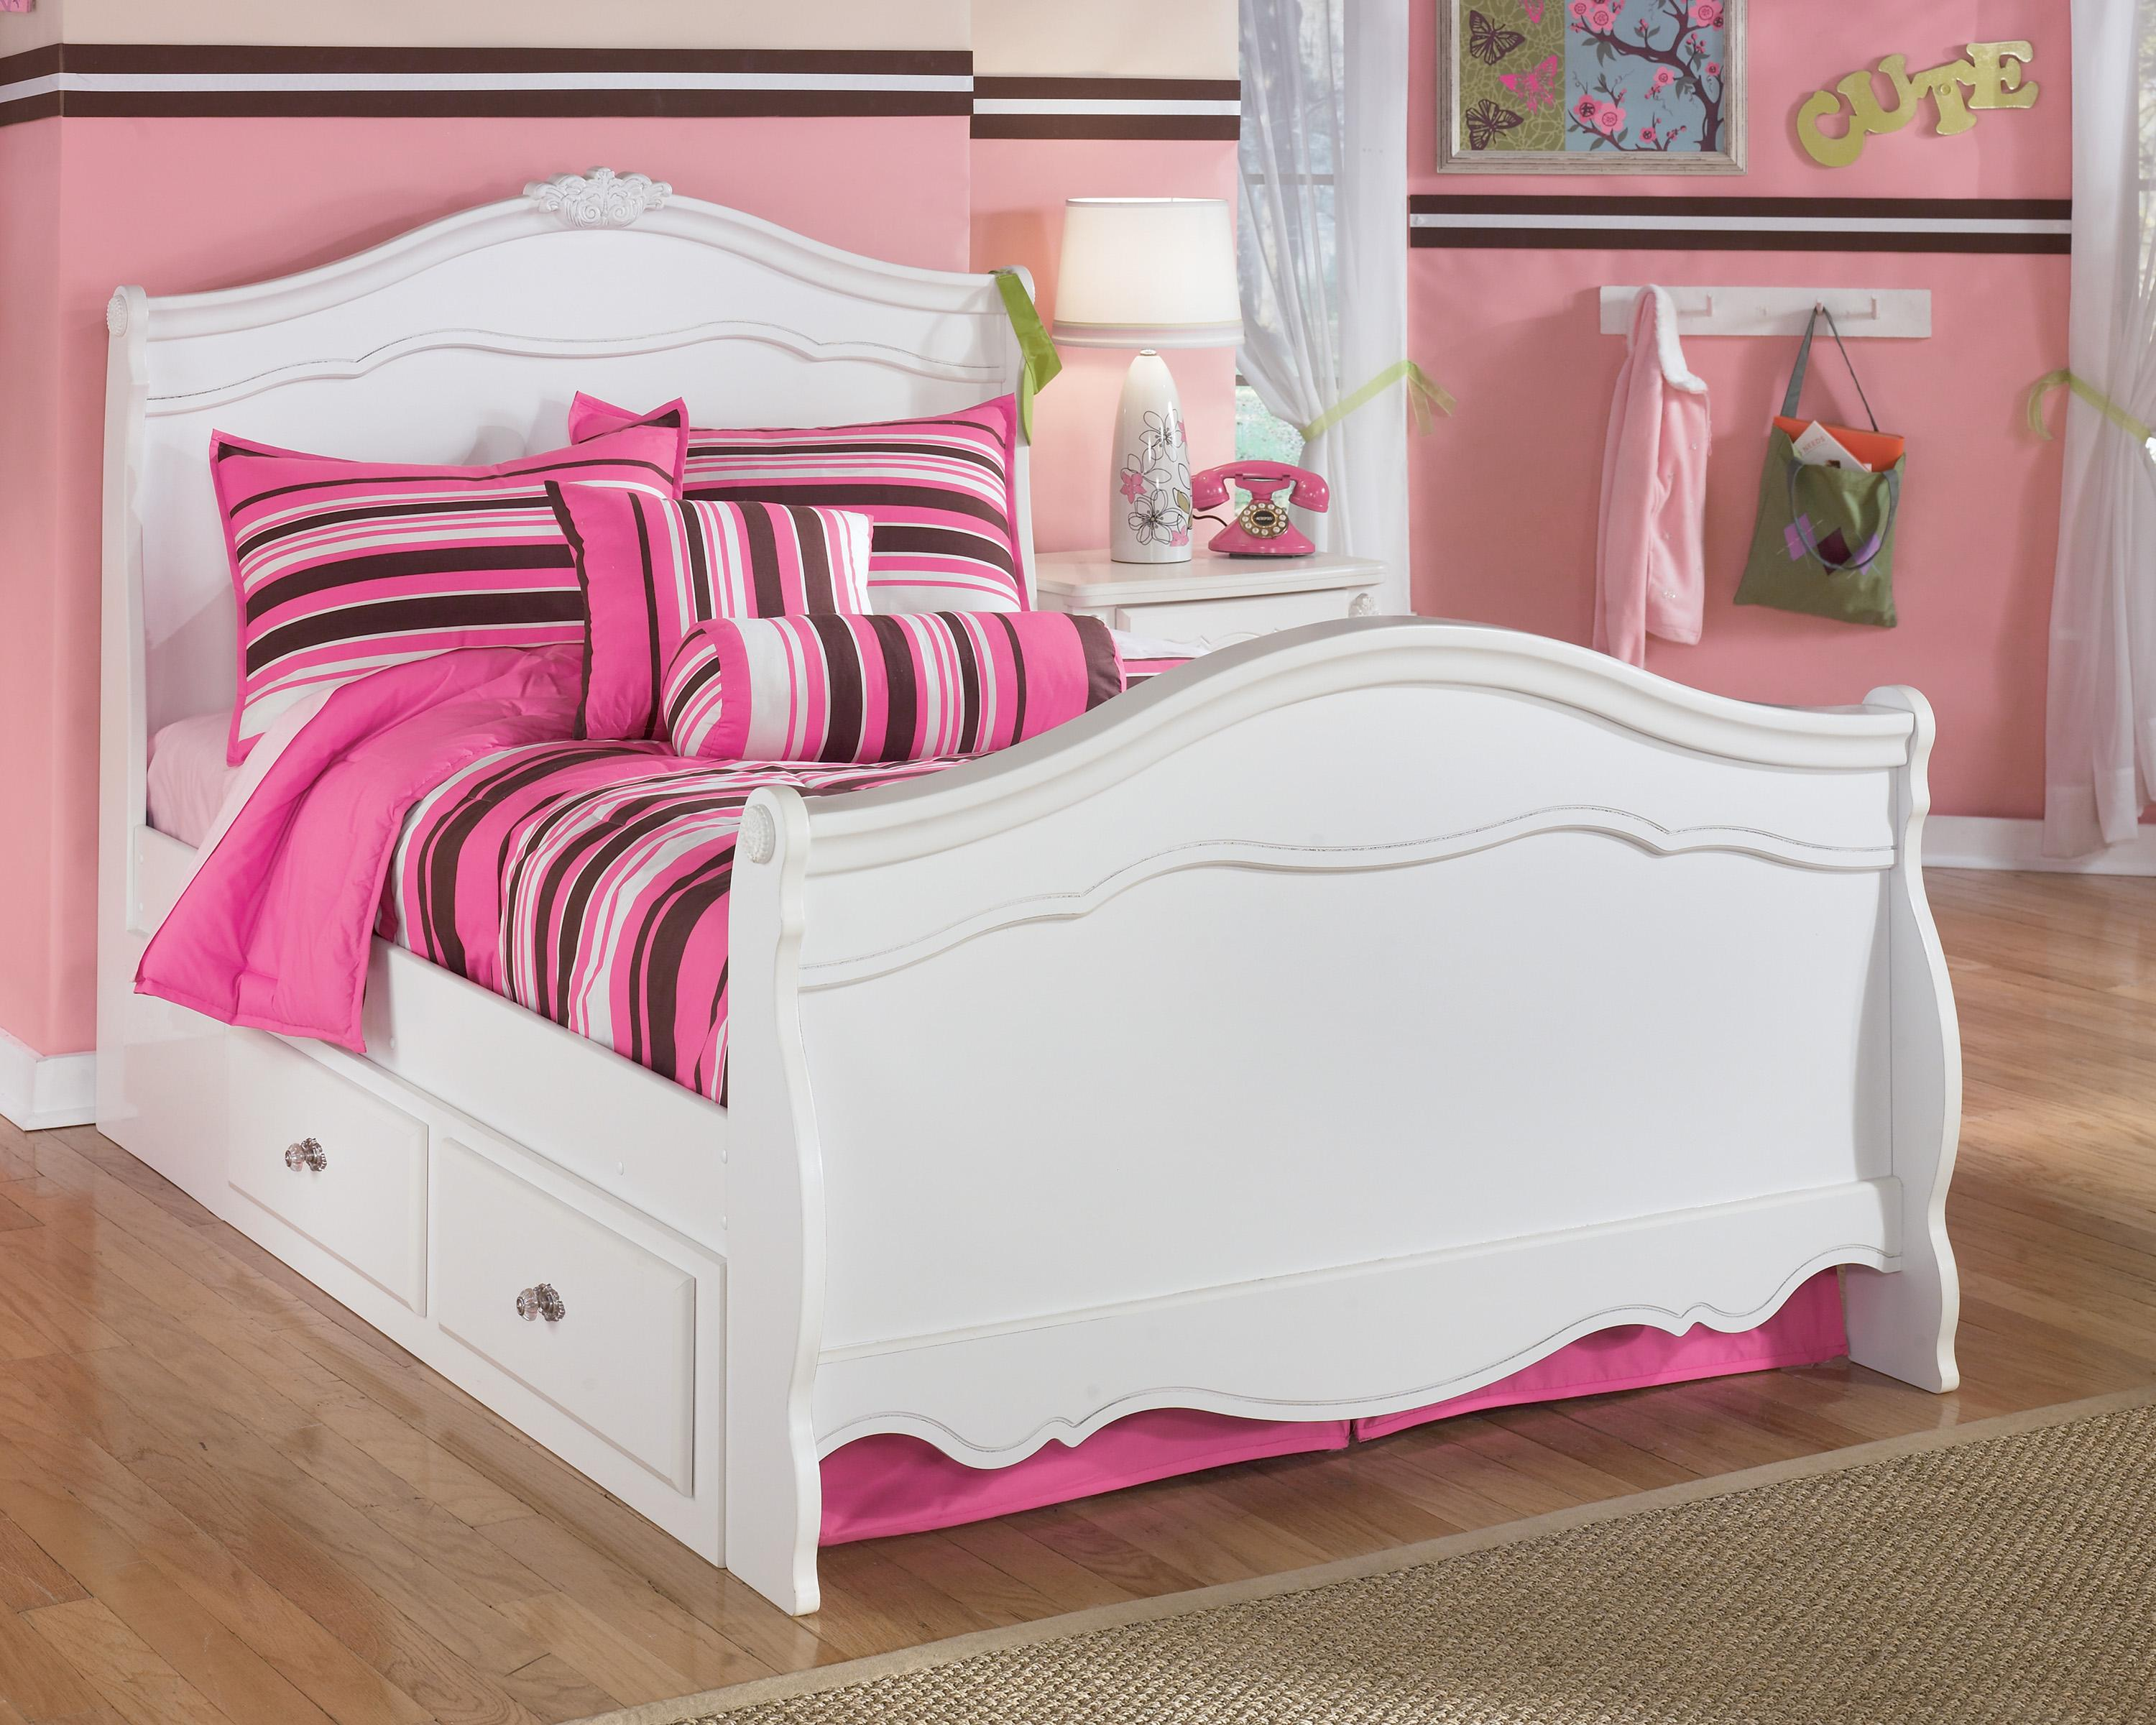 Under Bed Storage Frame Exquisite Full Sleigh Bed With Under Bed Storage By Signature Design By Ashley At Lindy S Furniture Company